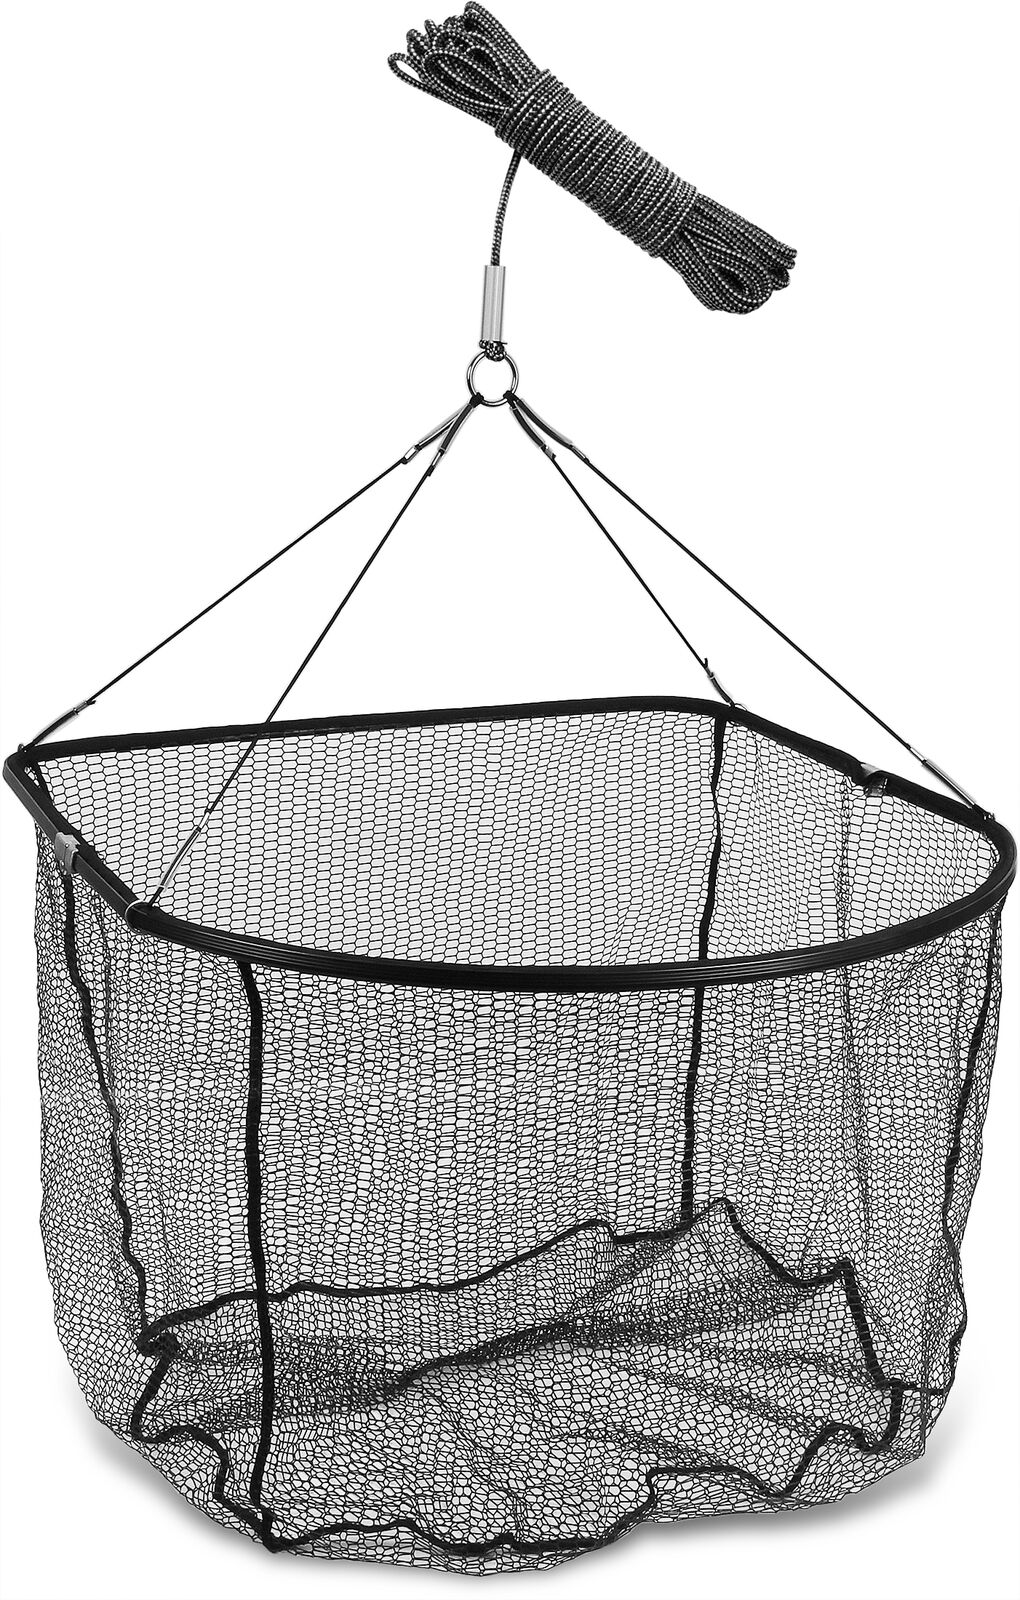 Bung Wall net with 20 M Rope, Foldable, rubberised net, Aluminium Frame